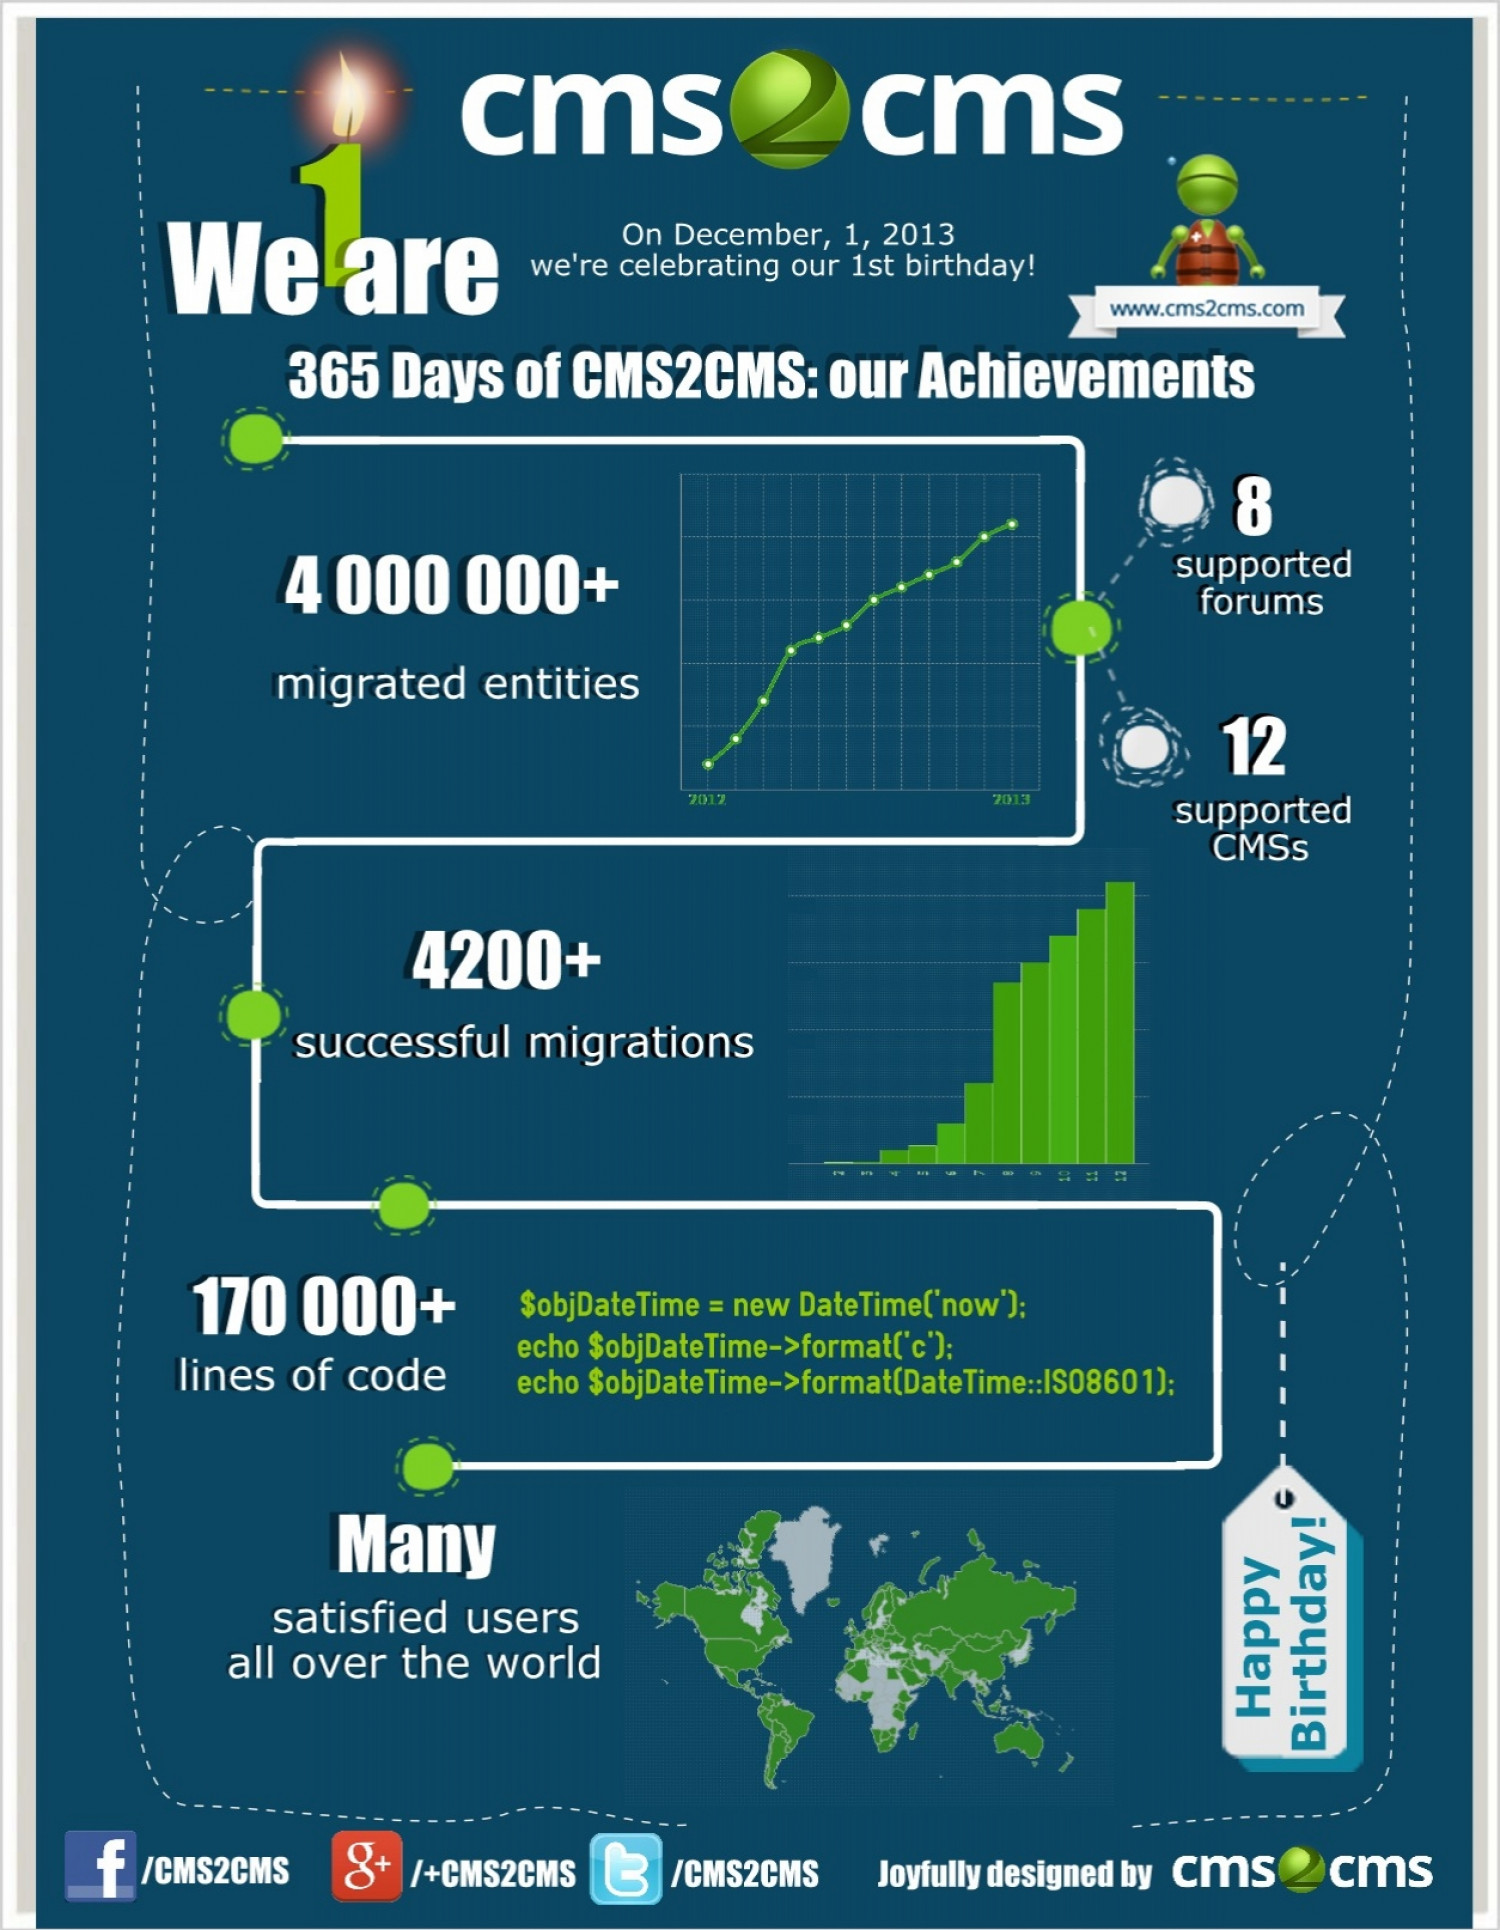 365 Days of CMS2CMS: Our Achievements Infographic